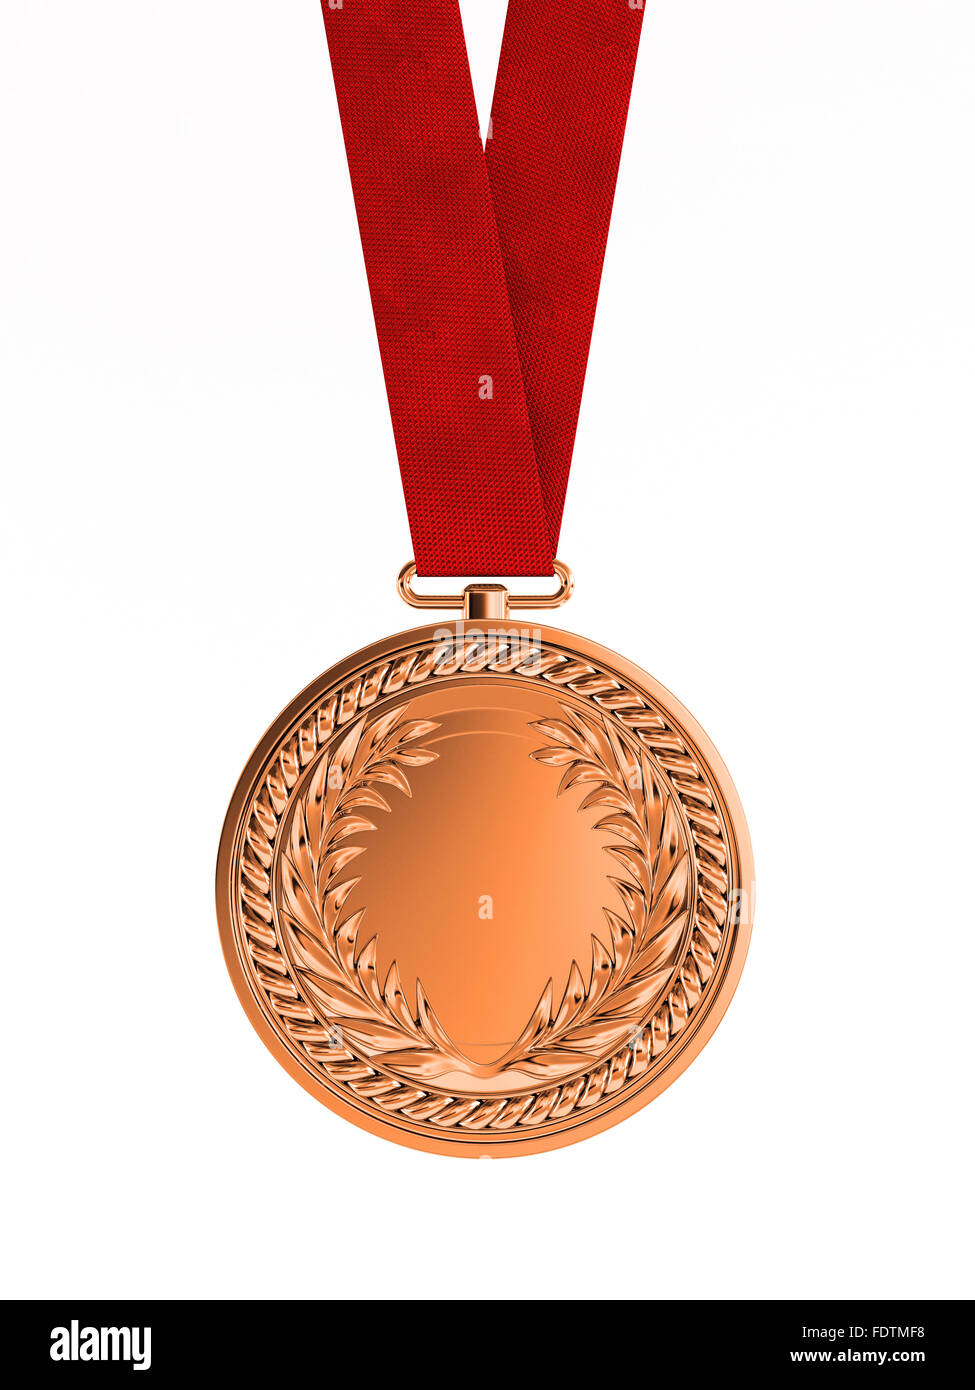 Blank bronze medal with ribbon for third place championship isolated on white background - Stock Image